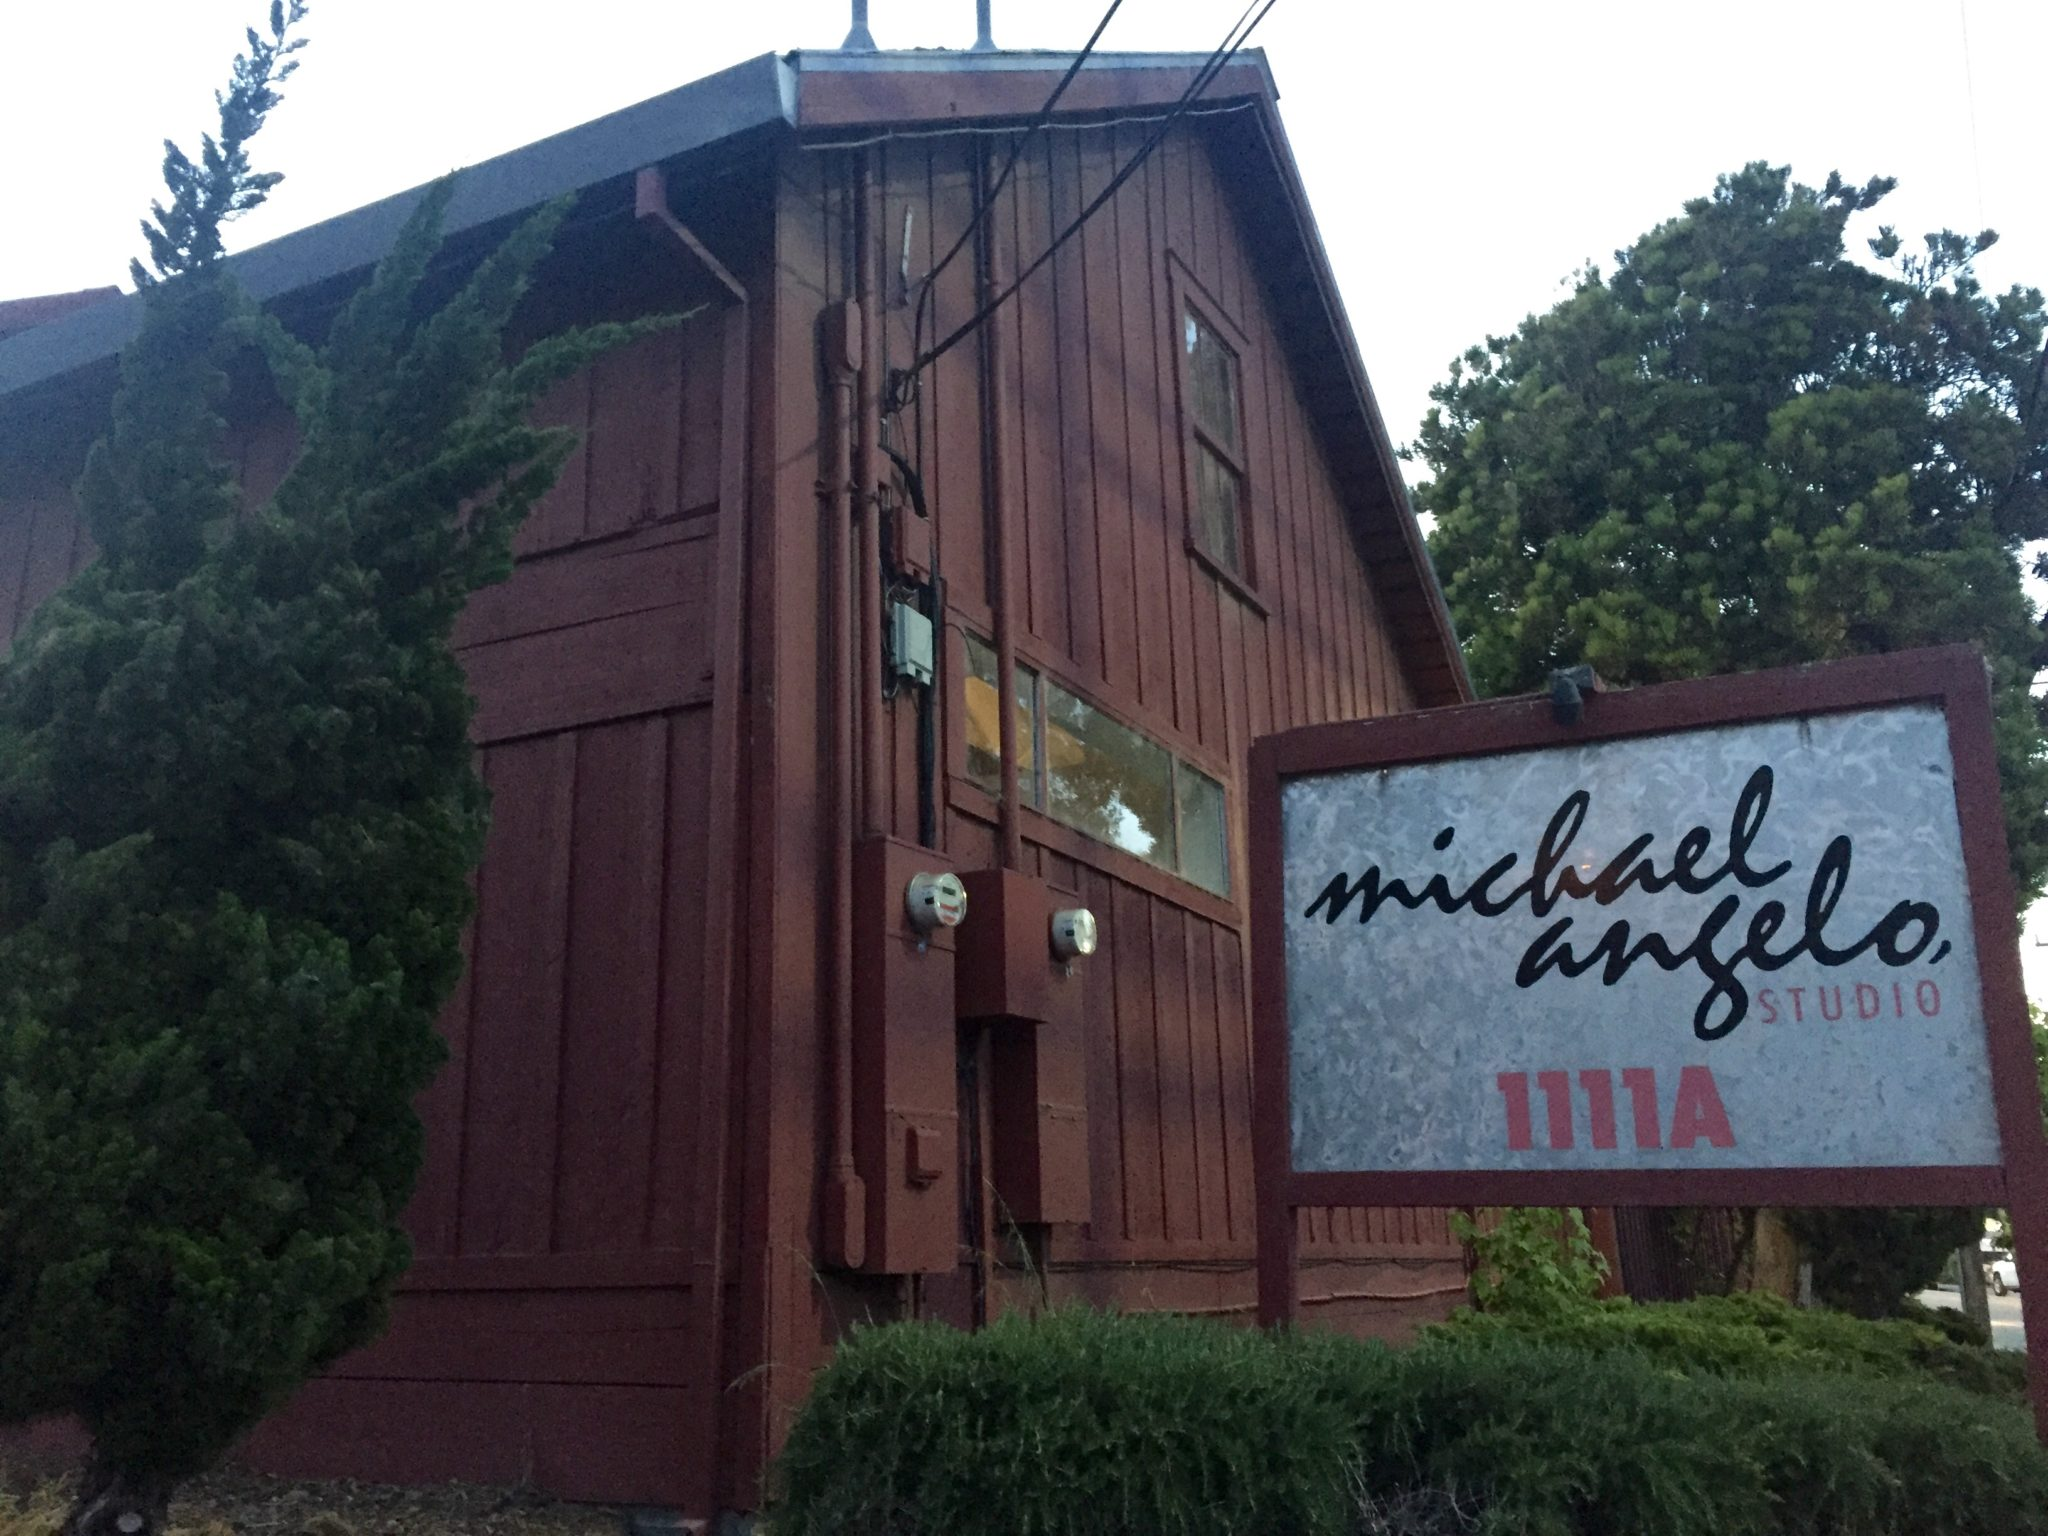 The Michaelangelo Gallery and Art Studios